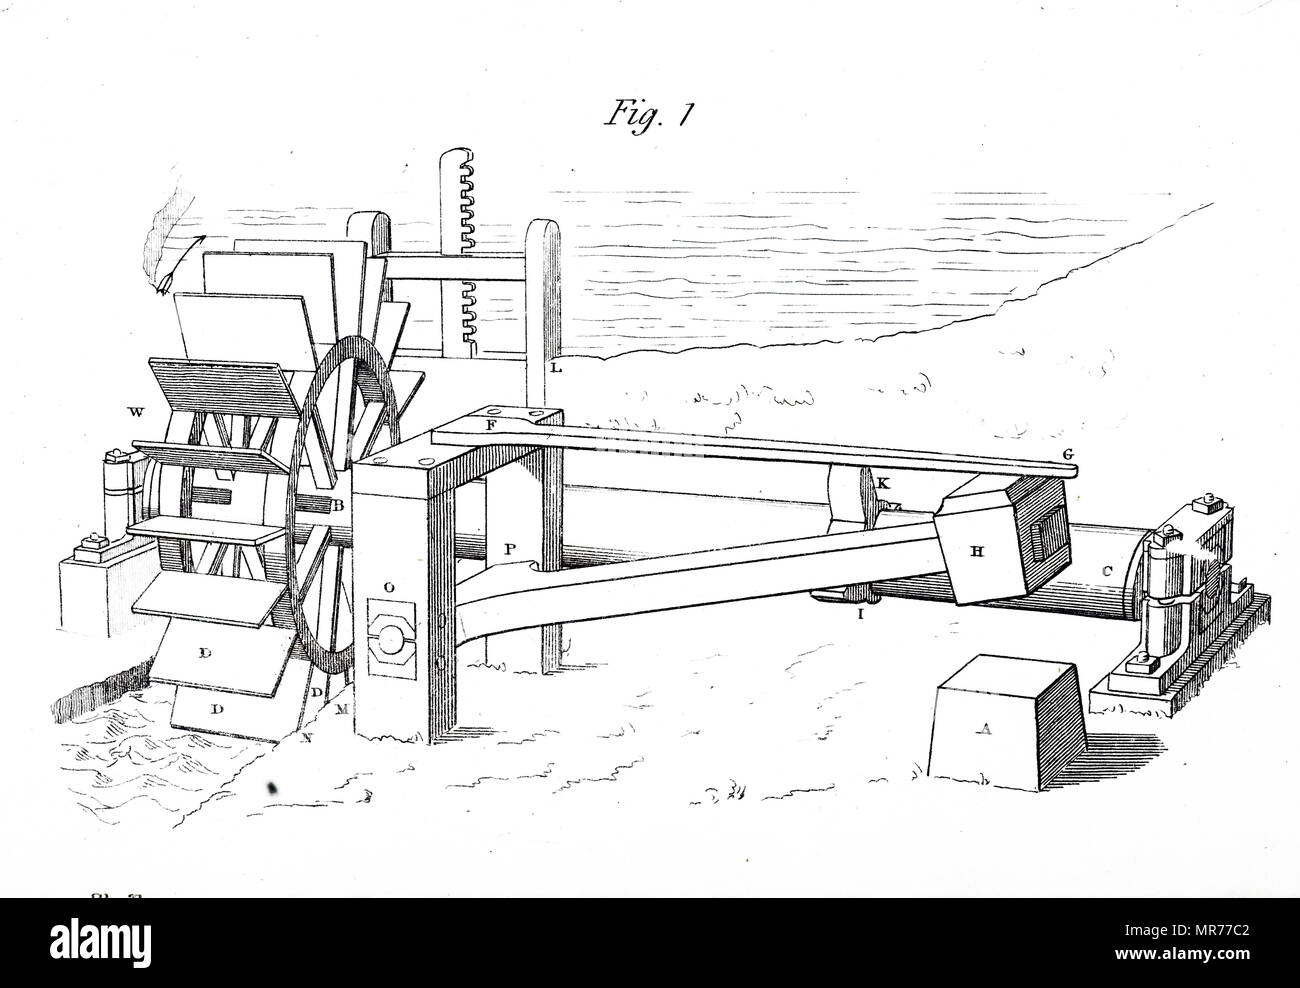 Engraving depicting a 150-200kig hammer powered by a water wheel. Cogs, (I,K,) raise the hammer and let it drop as the axle, (C,), turns. Dated 19th century - Stock Image